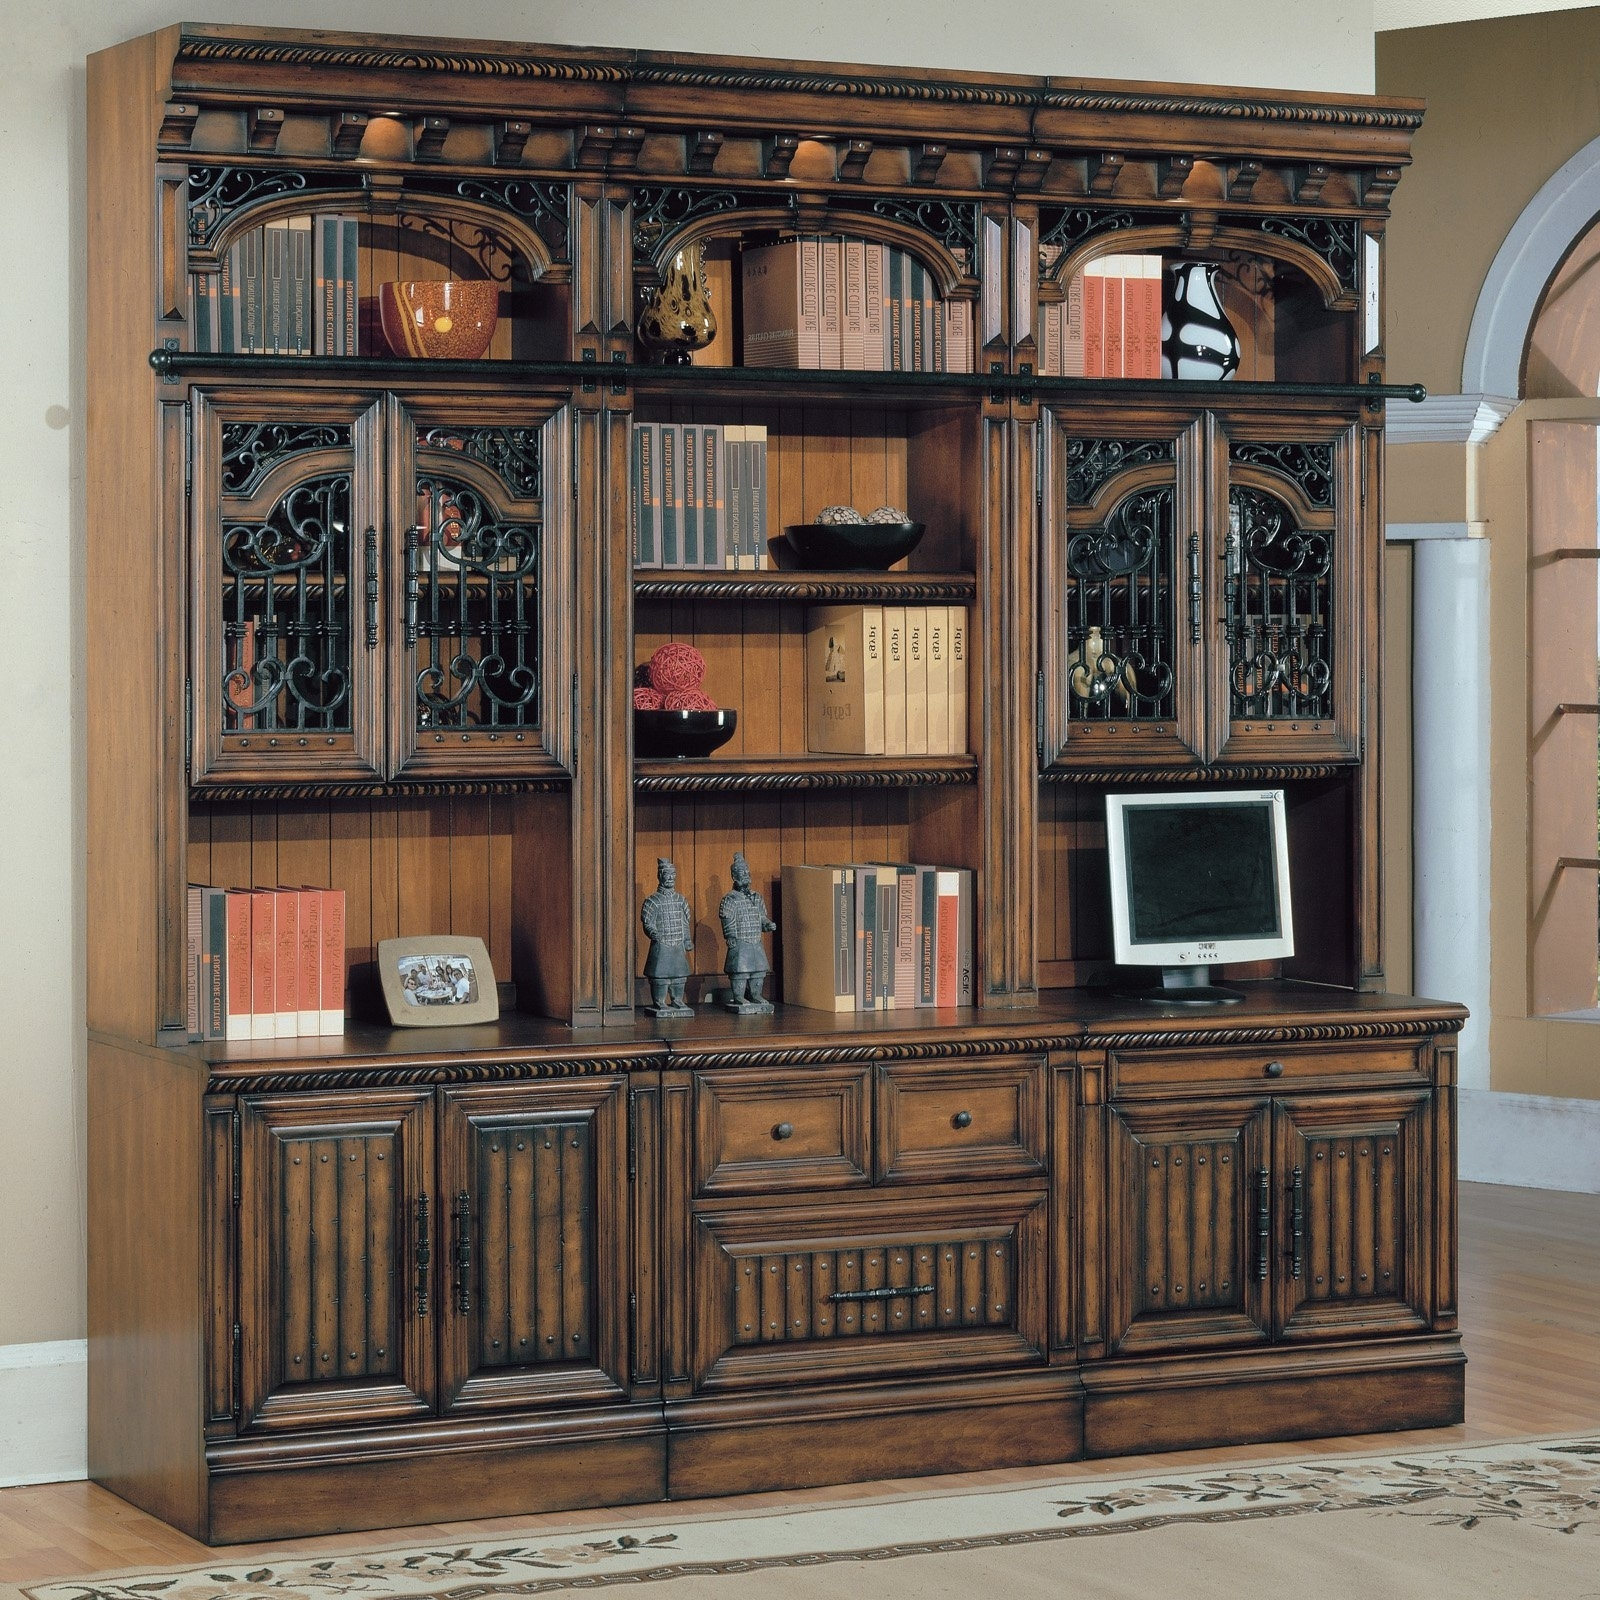 Home Decoration : Oversized Vintage Wood Bookshelves Wall Unit For Best And Newest Classic Bookshelves Design (View 13 of 15)